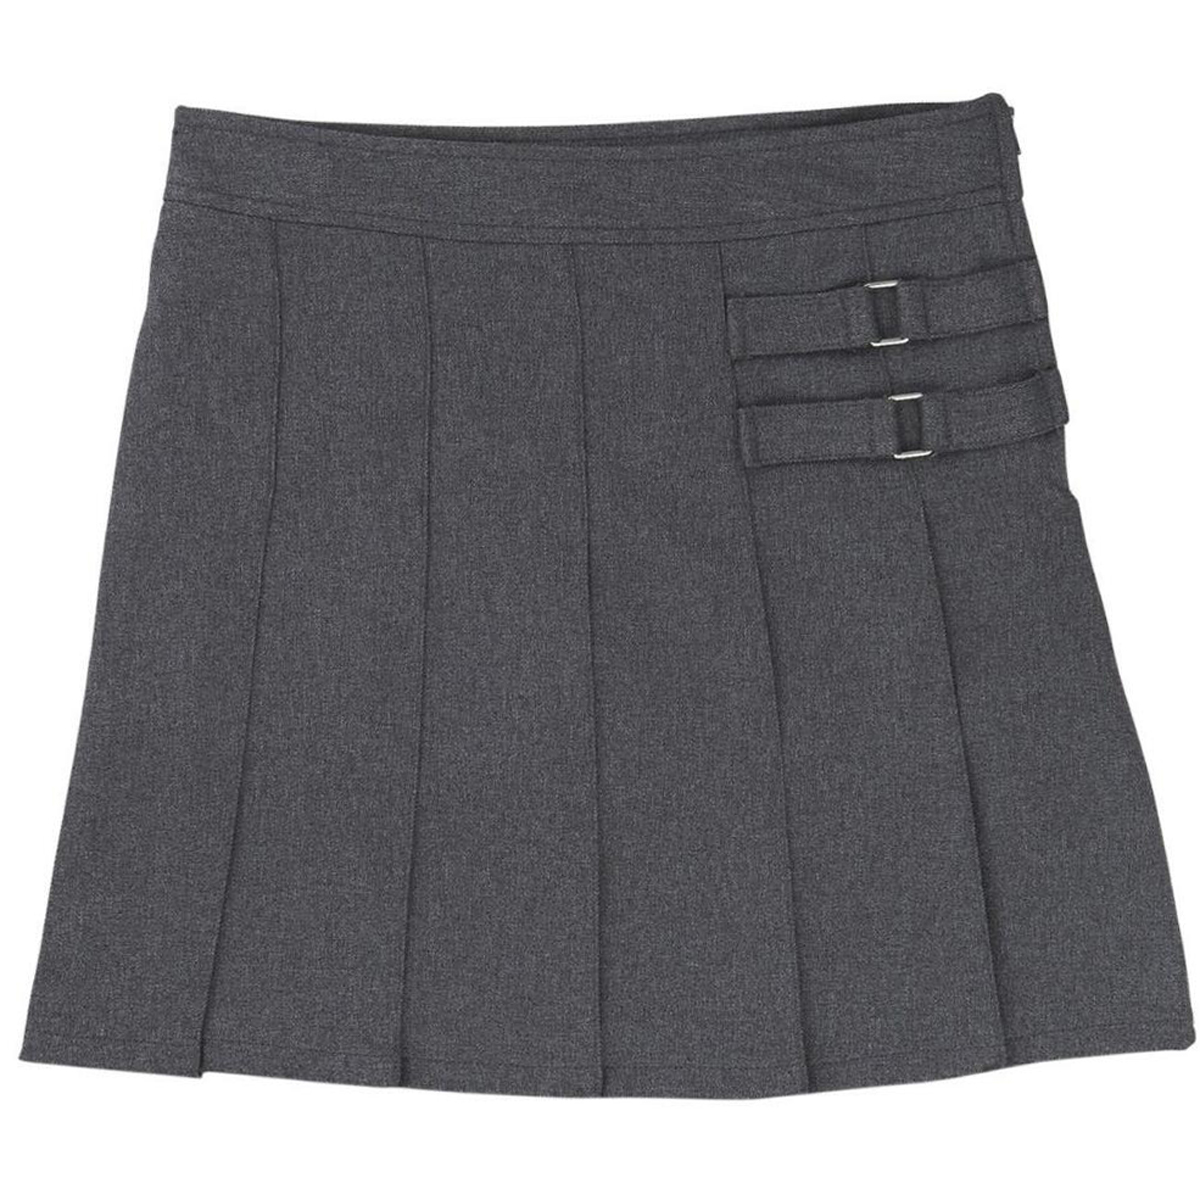 FRENCH TOAST Girl/'s Two Tab Pleated Uniform Scooter Skirt SX9103 NWT